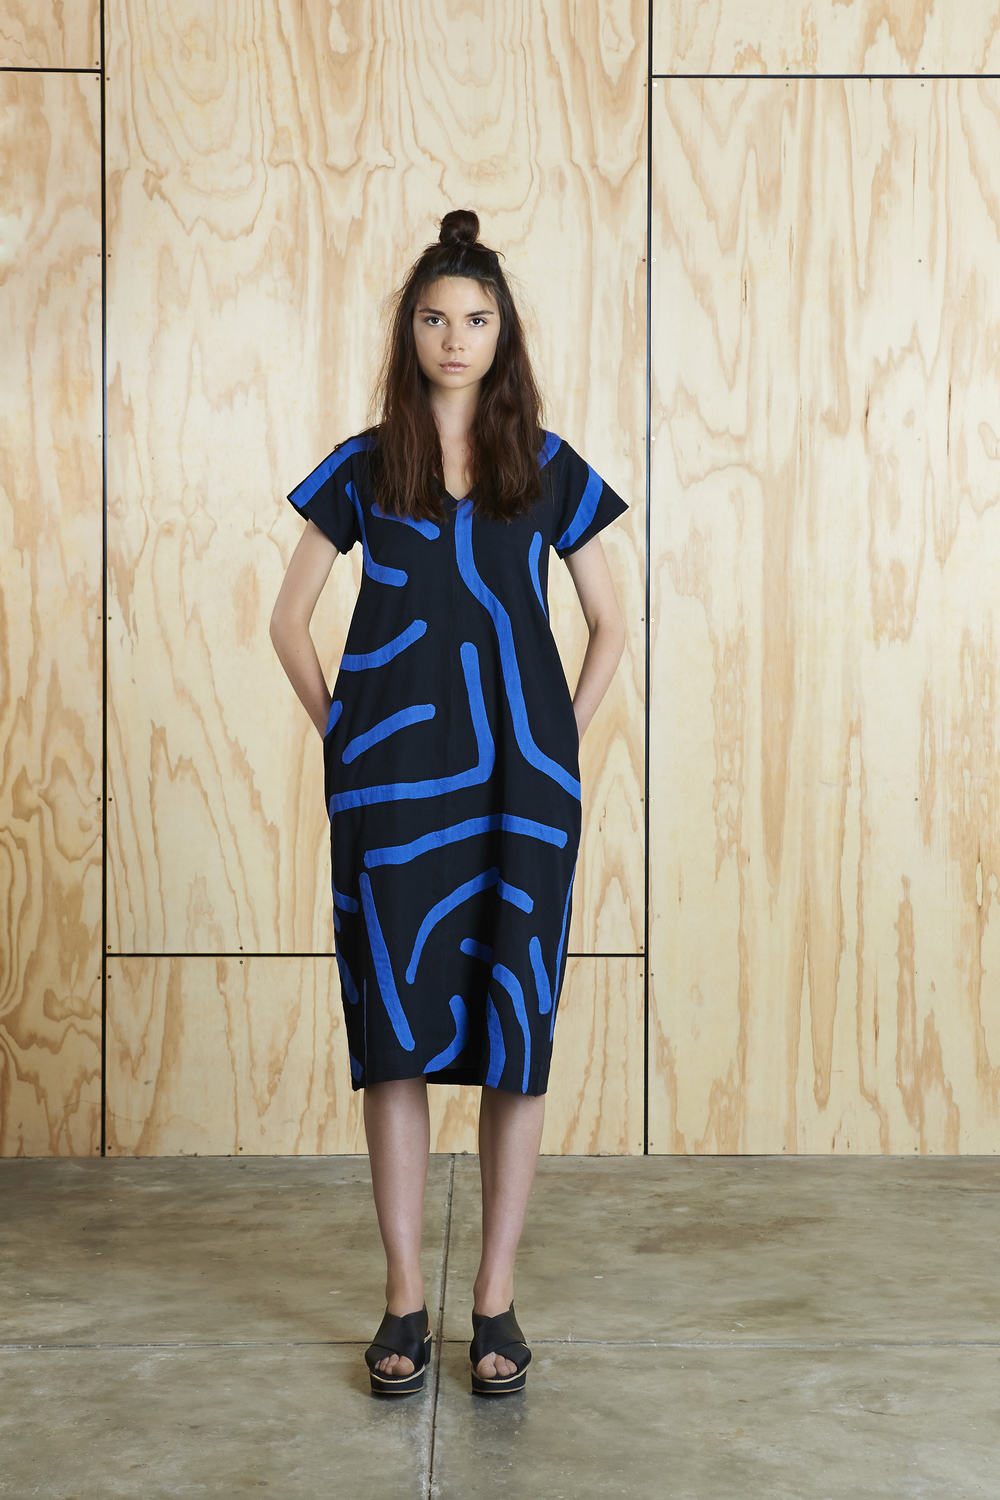 Big Creases Dress in Black/Blue  AUD $310